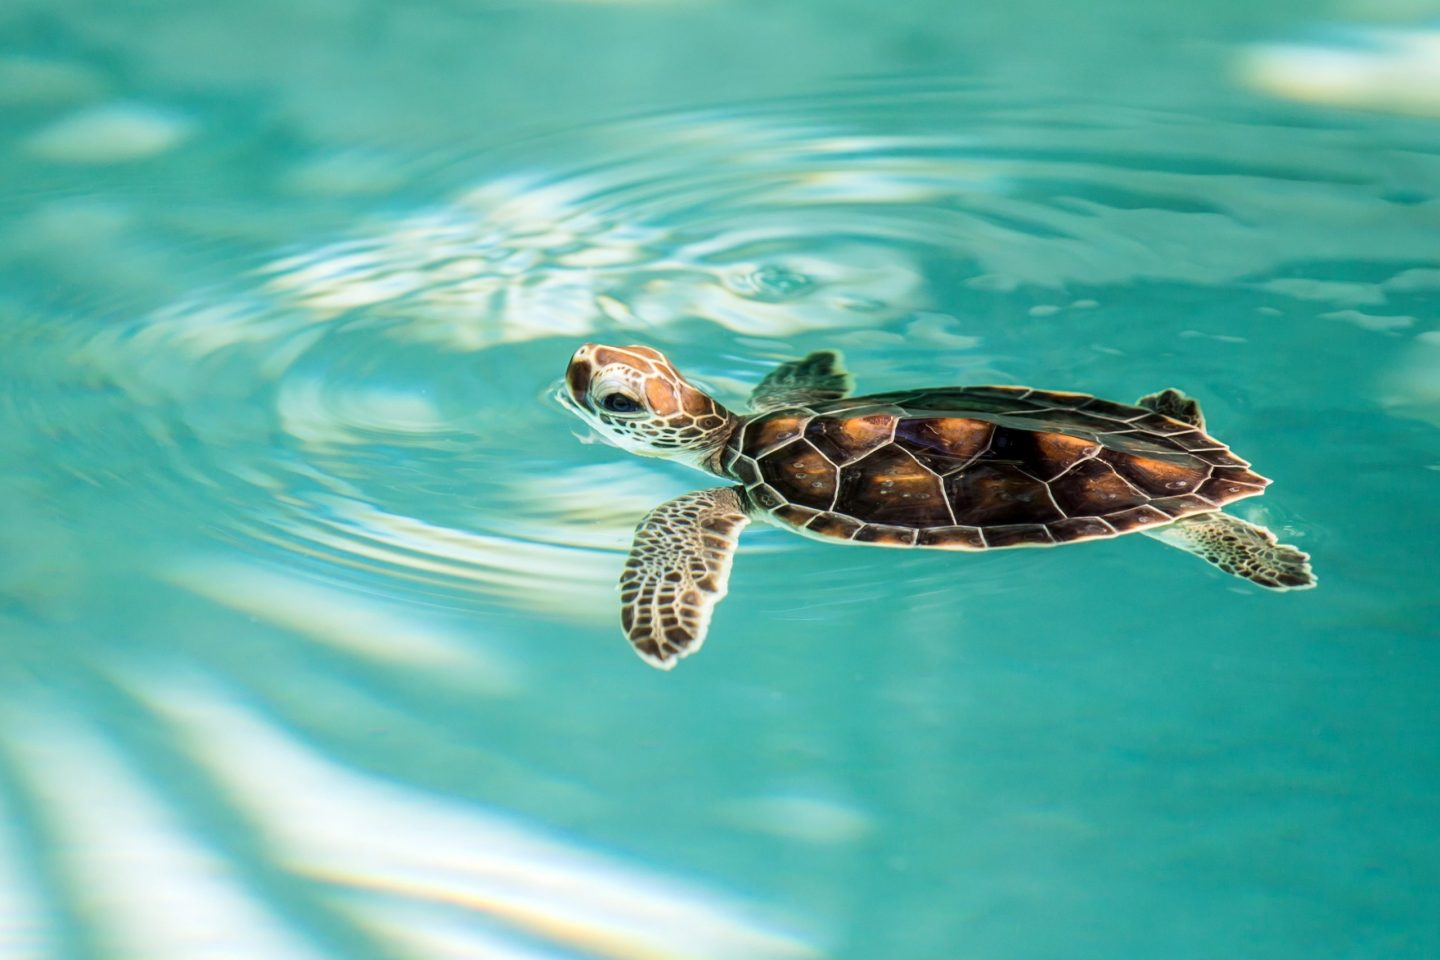 Cute endangered baby turtle swimming in turquoise water